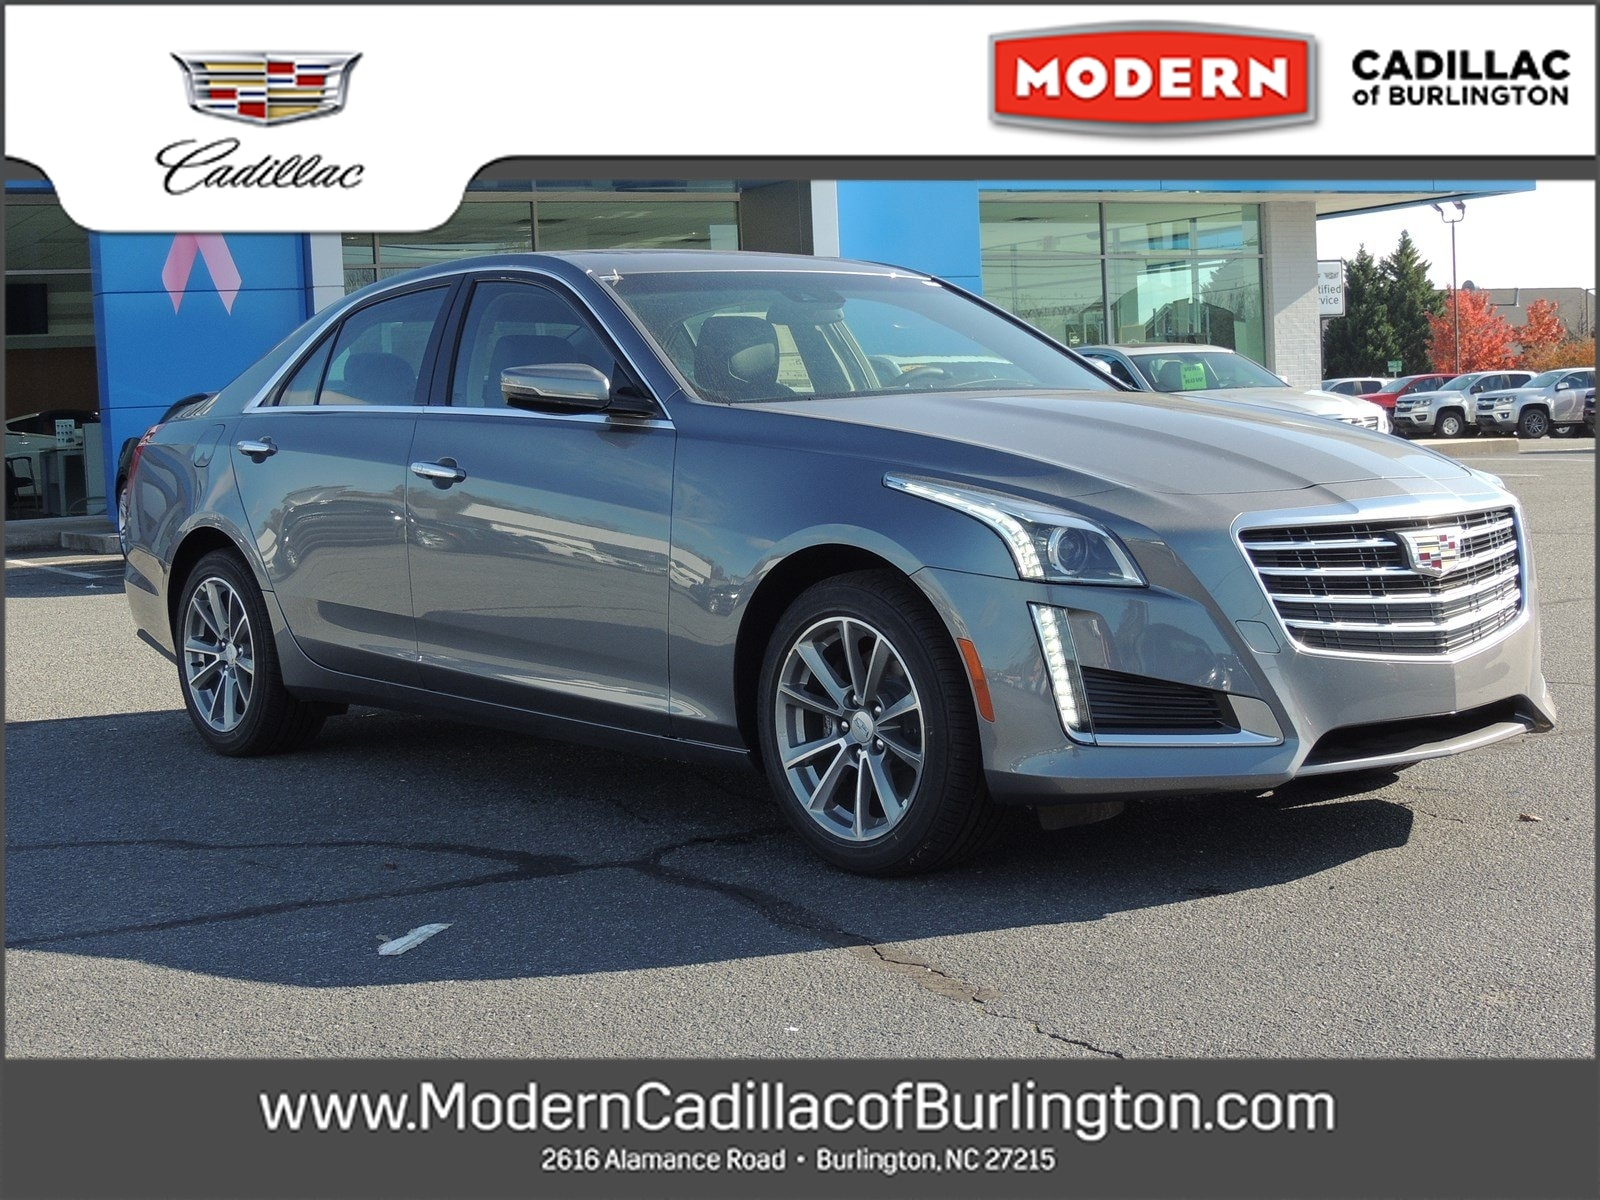 2019 CADILLAC CTS 2.0L Turbo Luxury Sedan